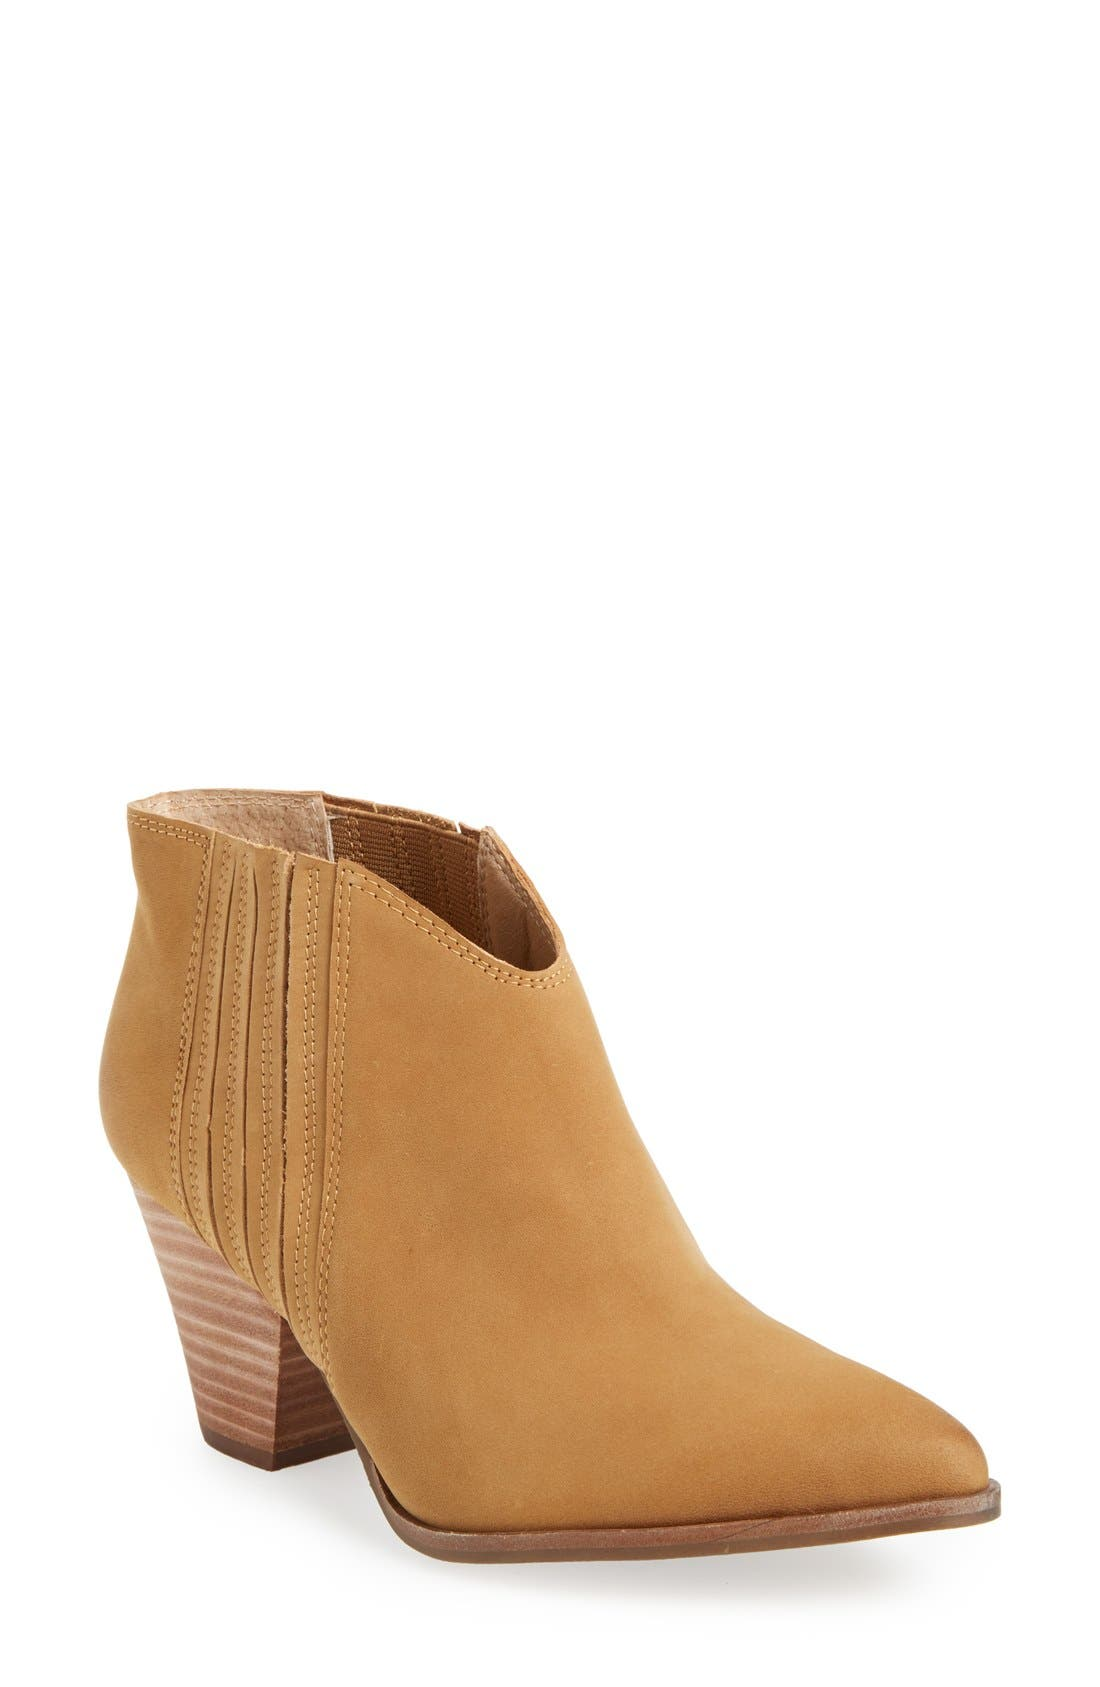 'Addie' Pointy Toe Ankle Bootie,                             Main thumbnail 3, color,